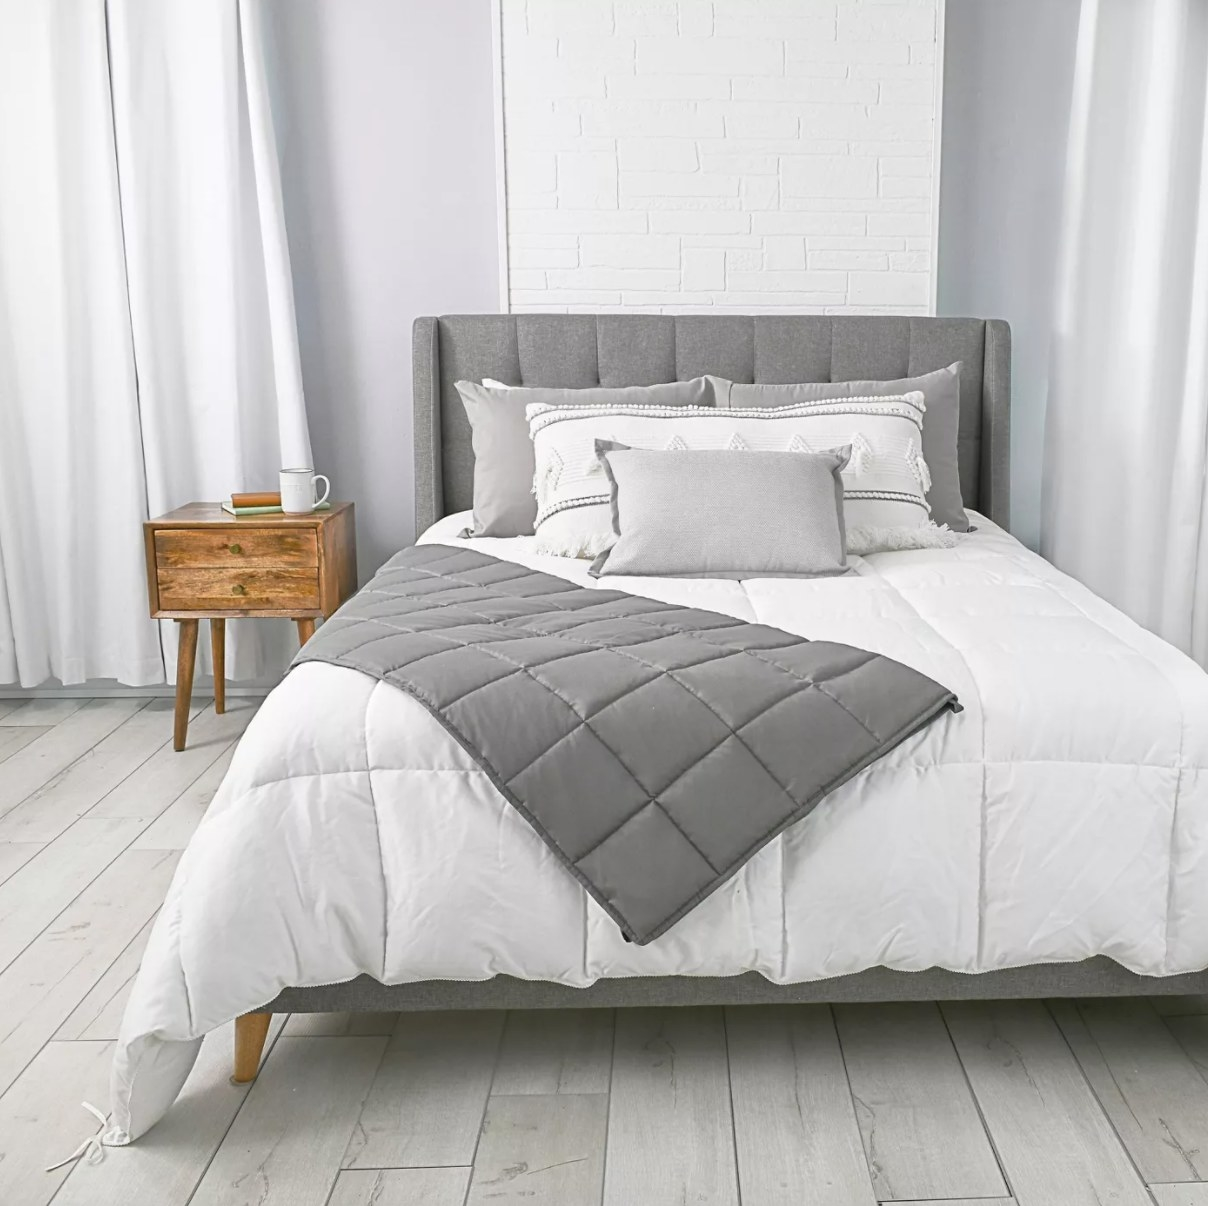 A gray weighted blanket lying across a white bed